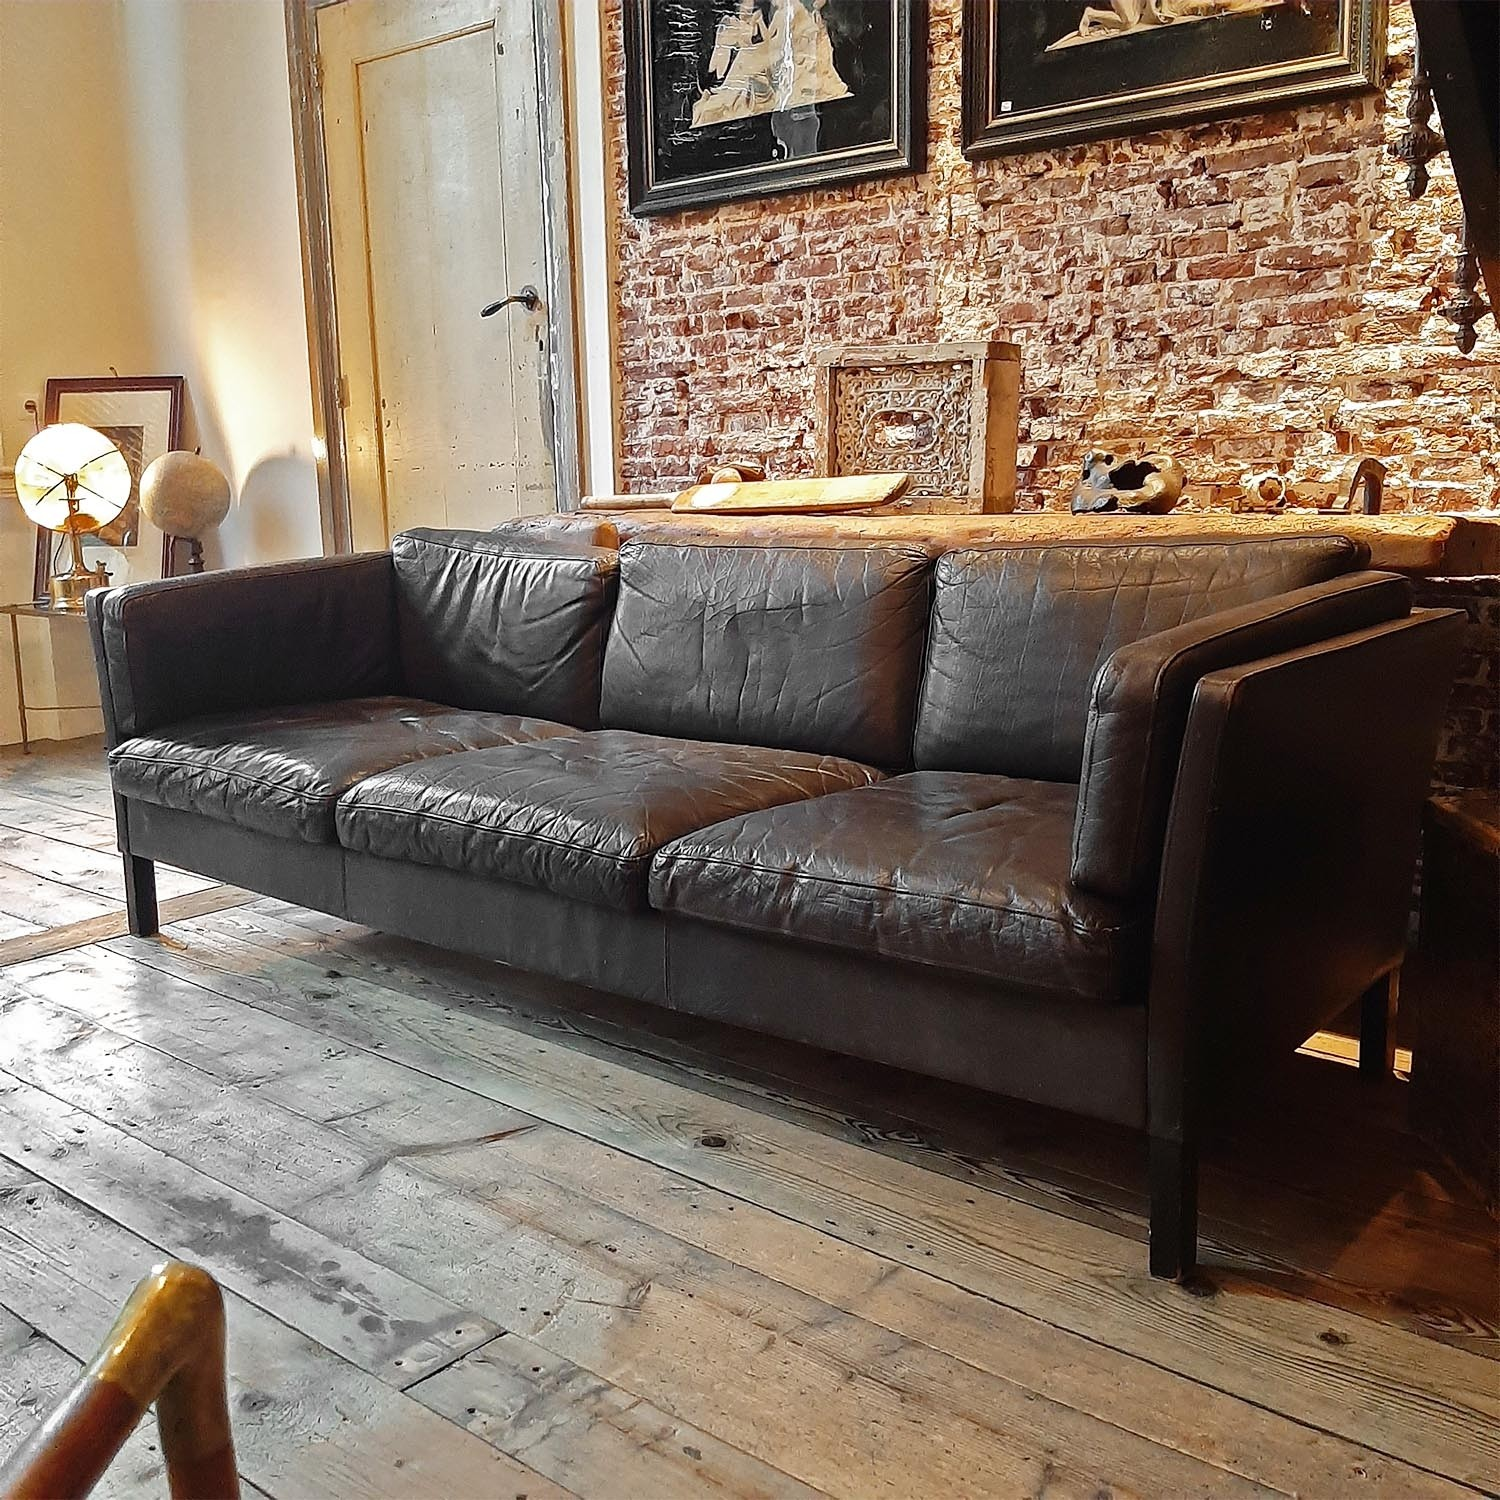 Genuine old vintage brown leather couch